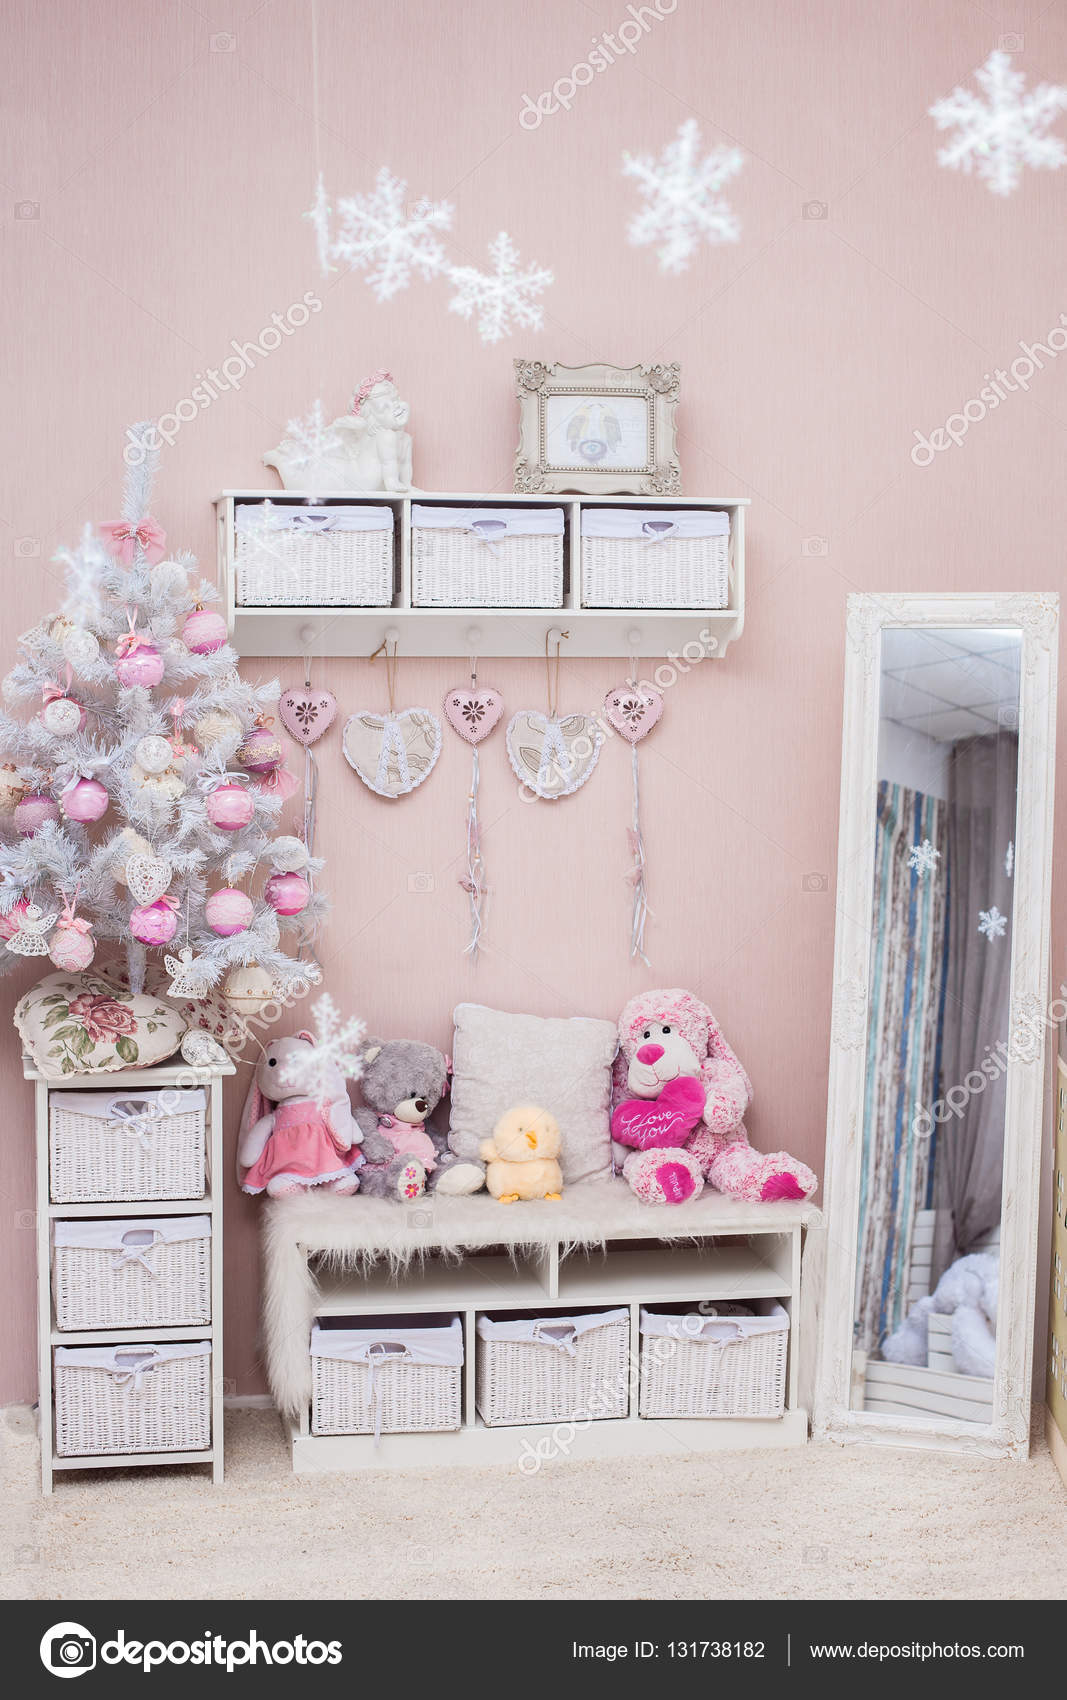 weihnachtsbaum im shabby chic stil wohnzimmer stockfoto 131738182. Black Bedroom Furniture Sets. Home Design Ideas